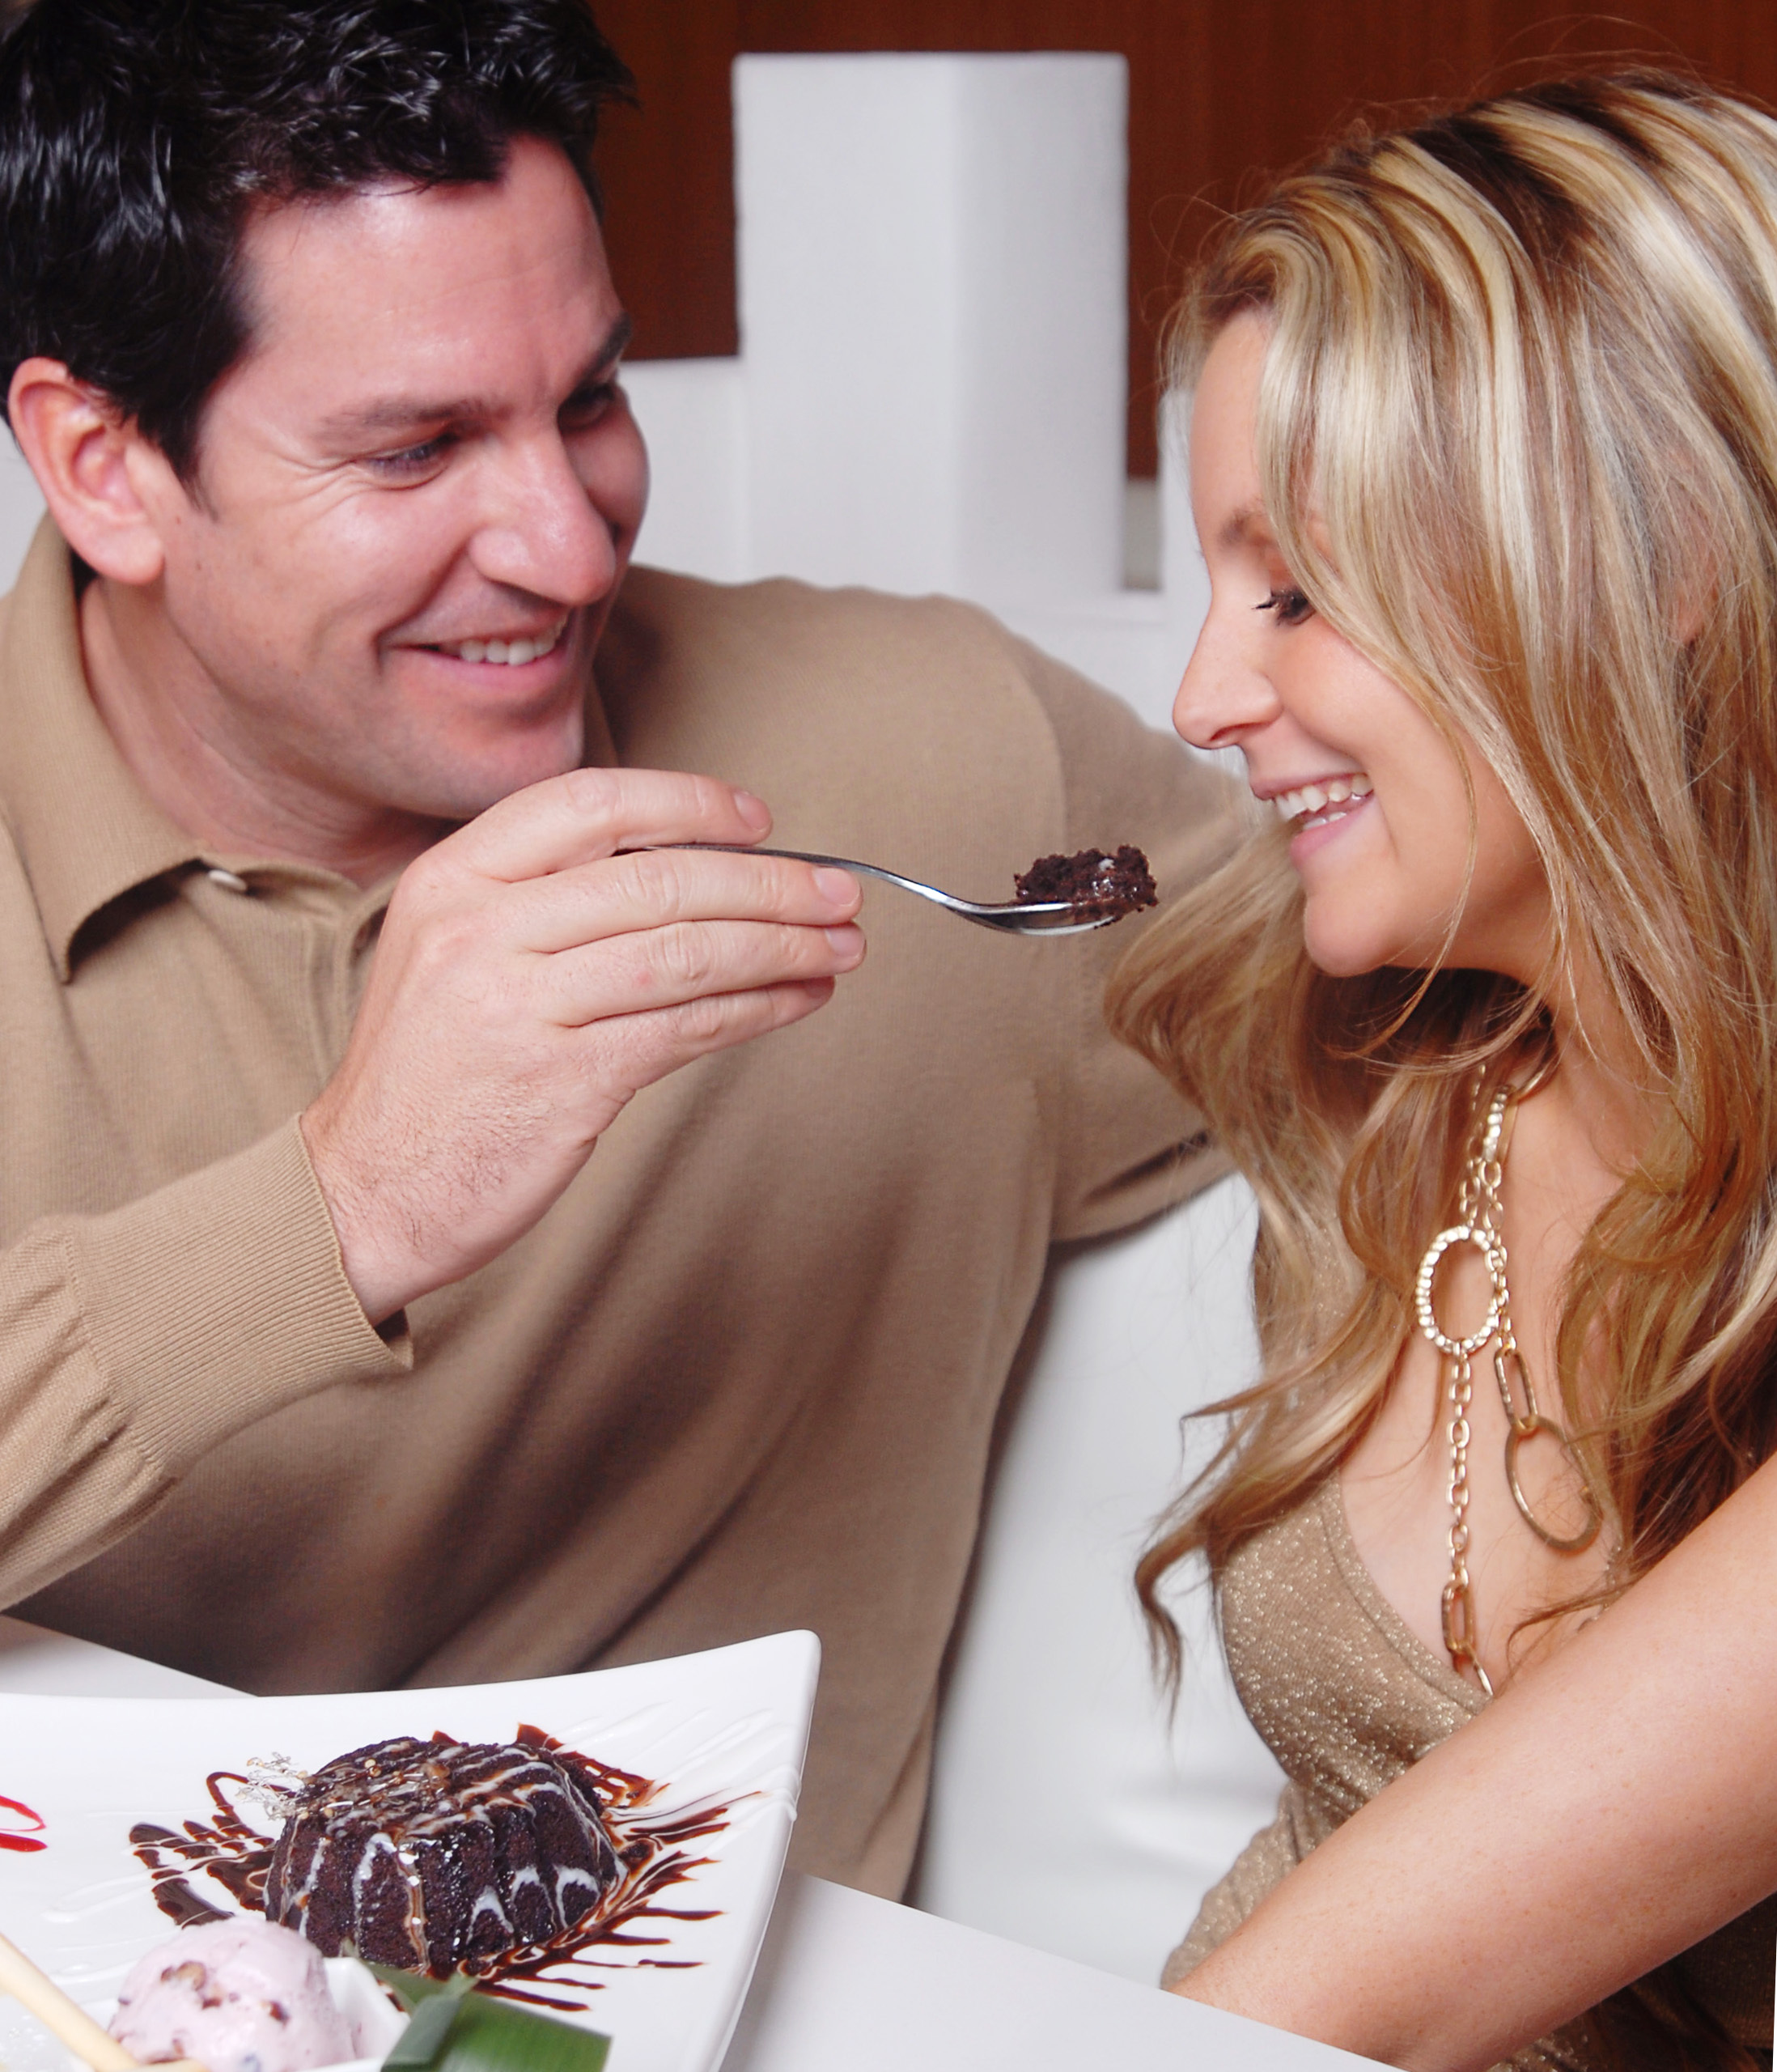 Couple - Chocolate cake.jpg